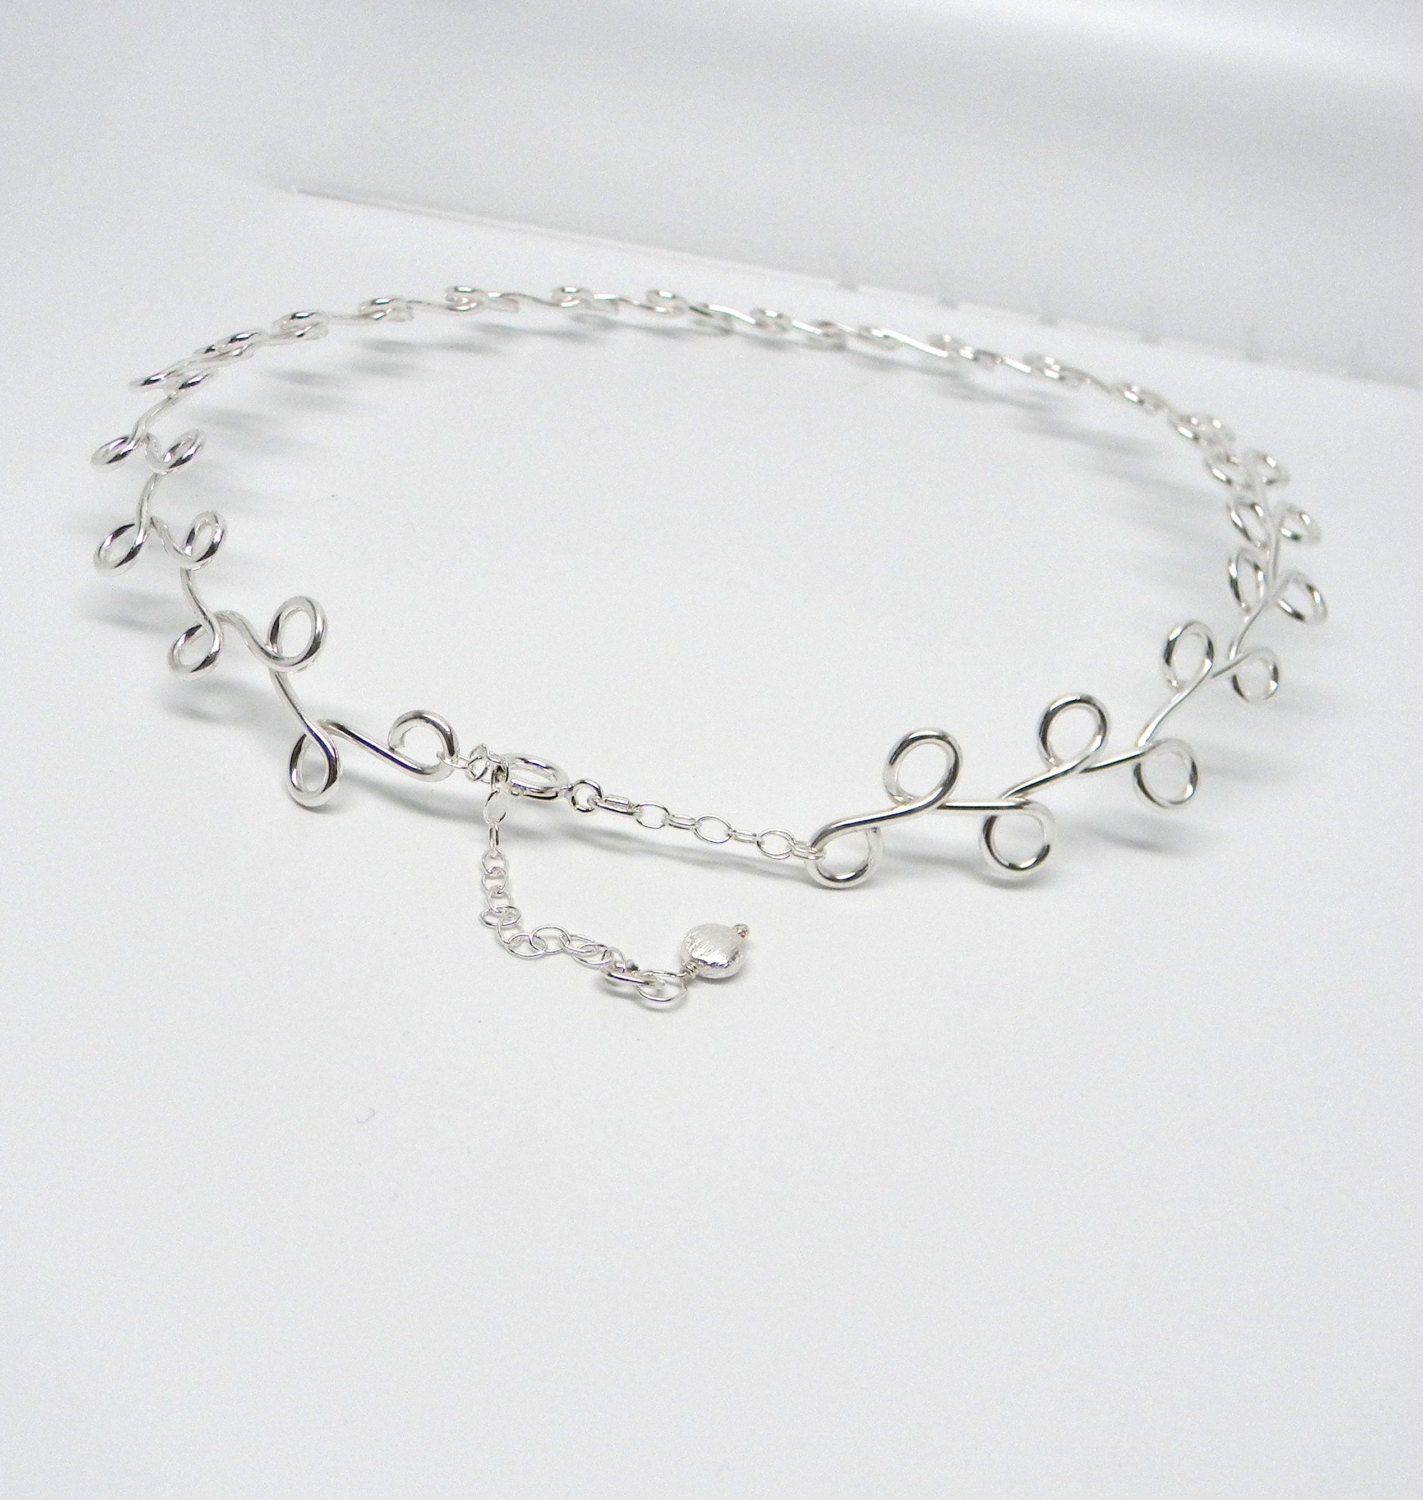 Discreet Slave Collar Vine Motif Sterling Silver or Day or Public Wear Adjustable from 16 to 18 Inches